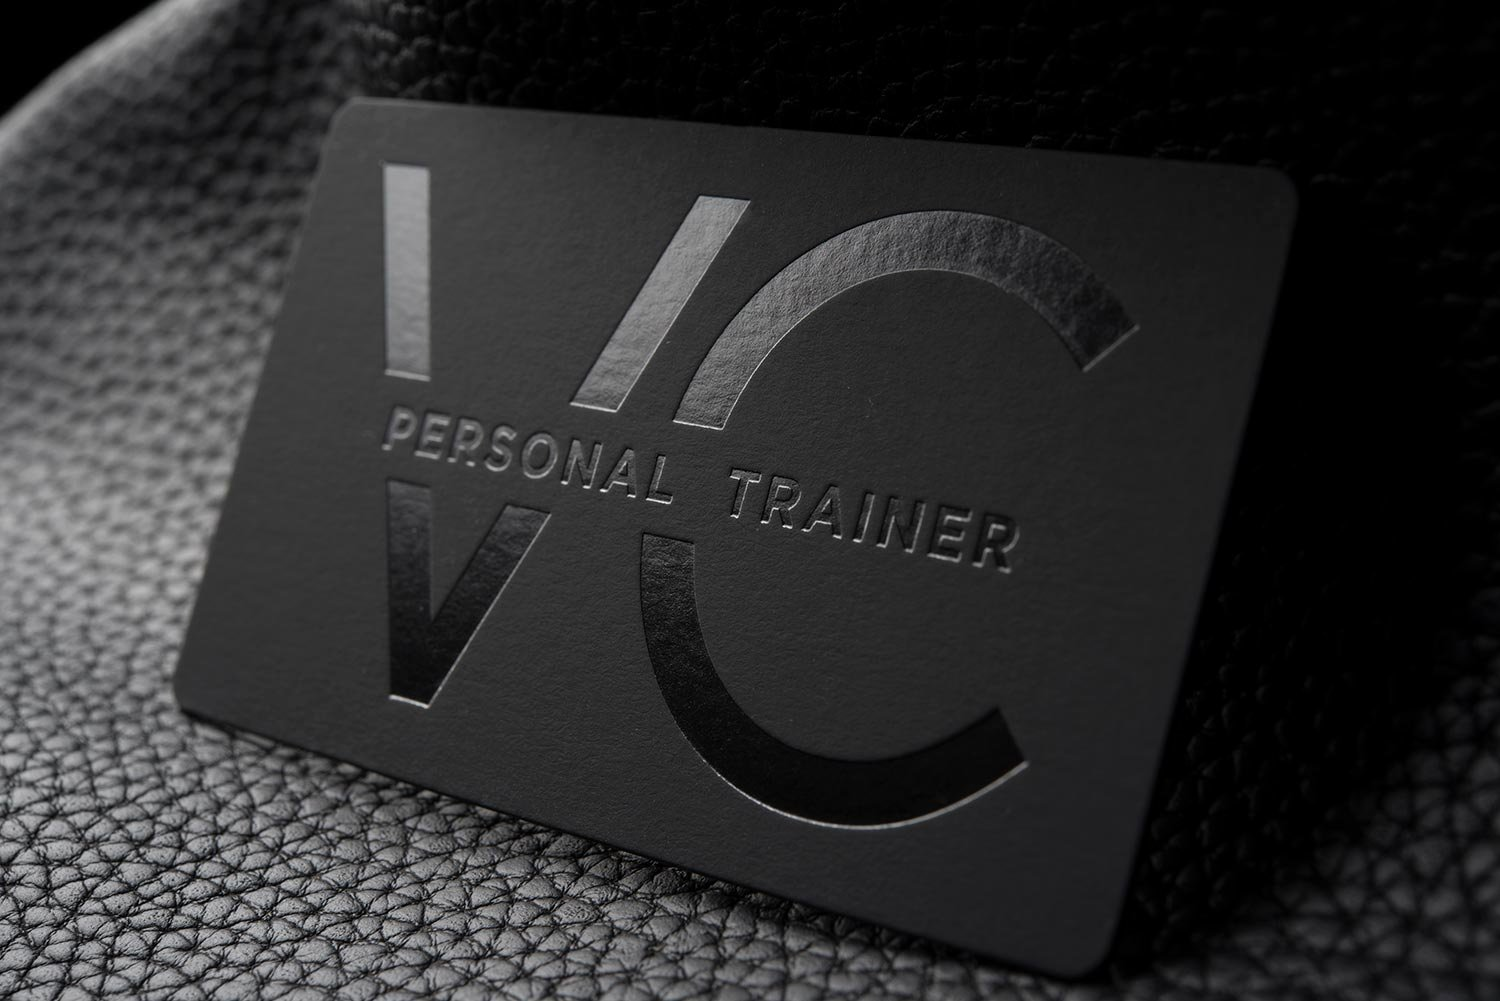 Personal Trainer Business Cards Elegant Free Impressive Hard Suede Personal Trainer Business Card Template Vc